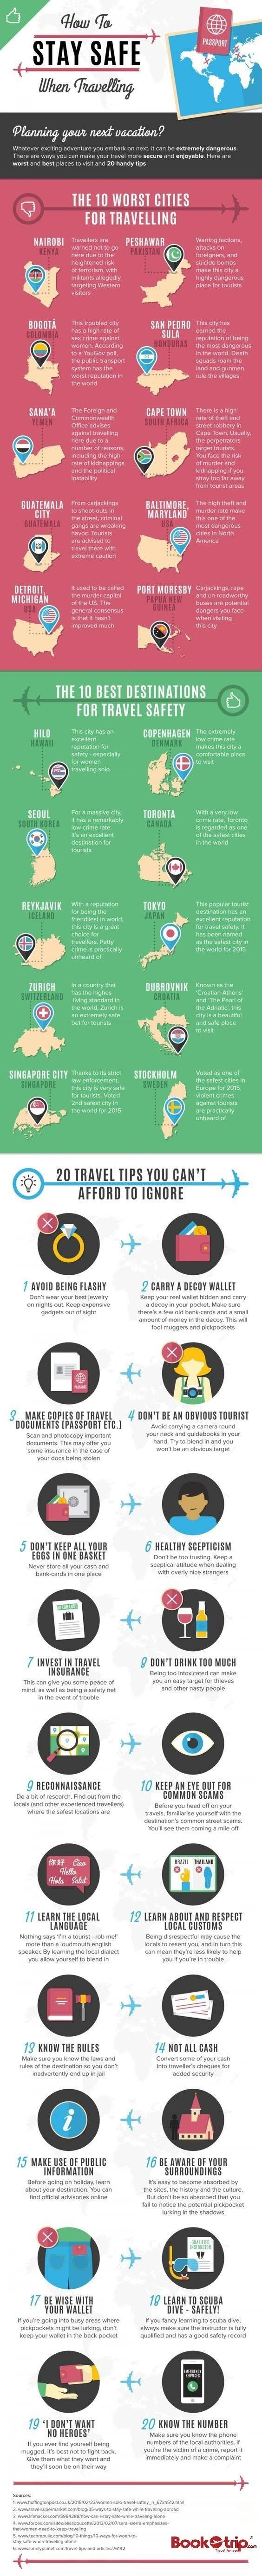 How to Stay Safe When Travelling #infographic